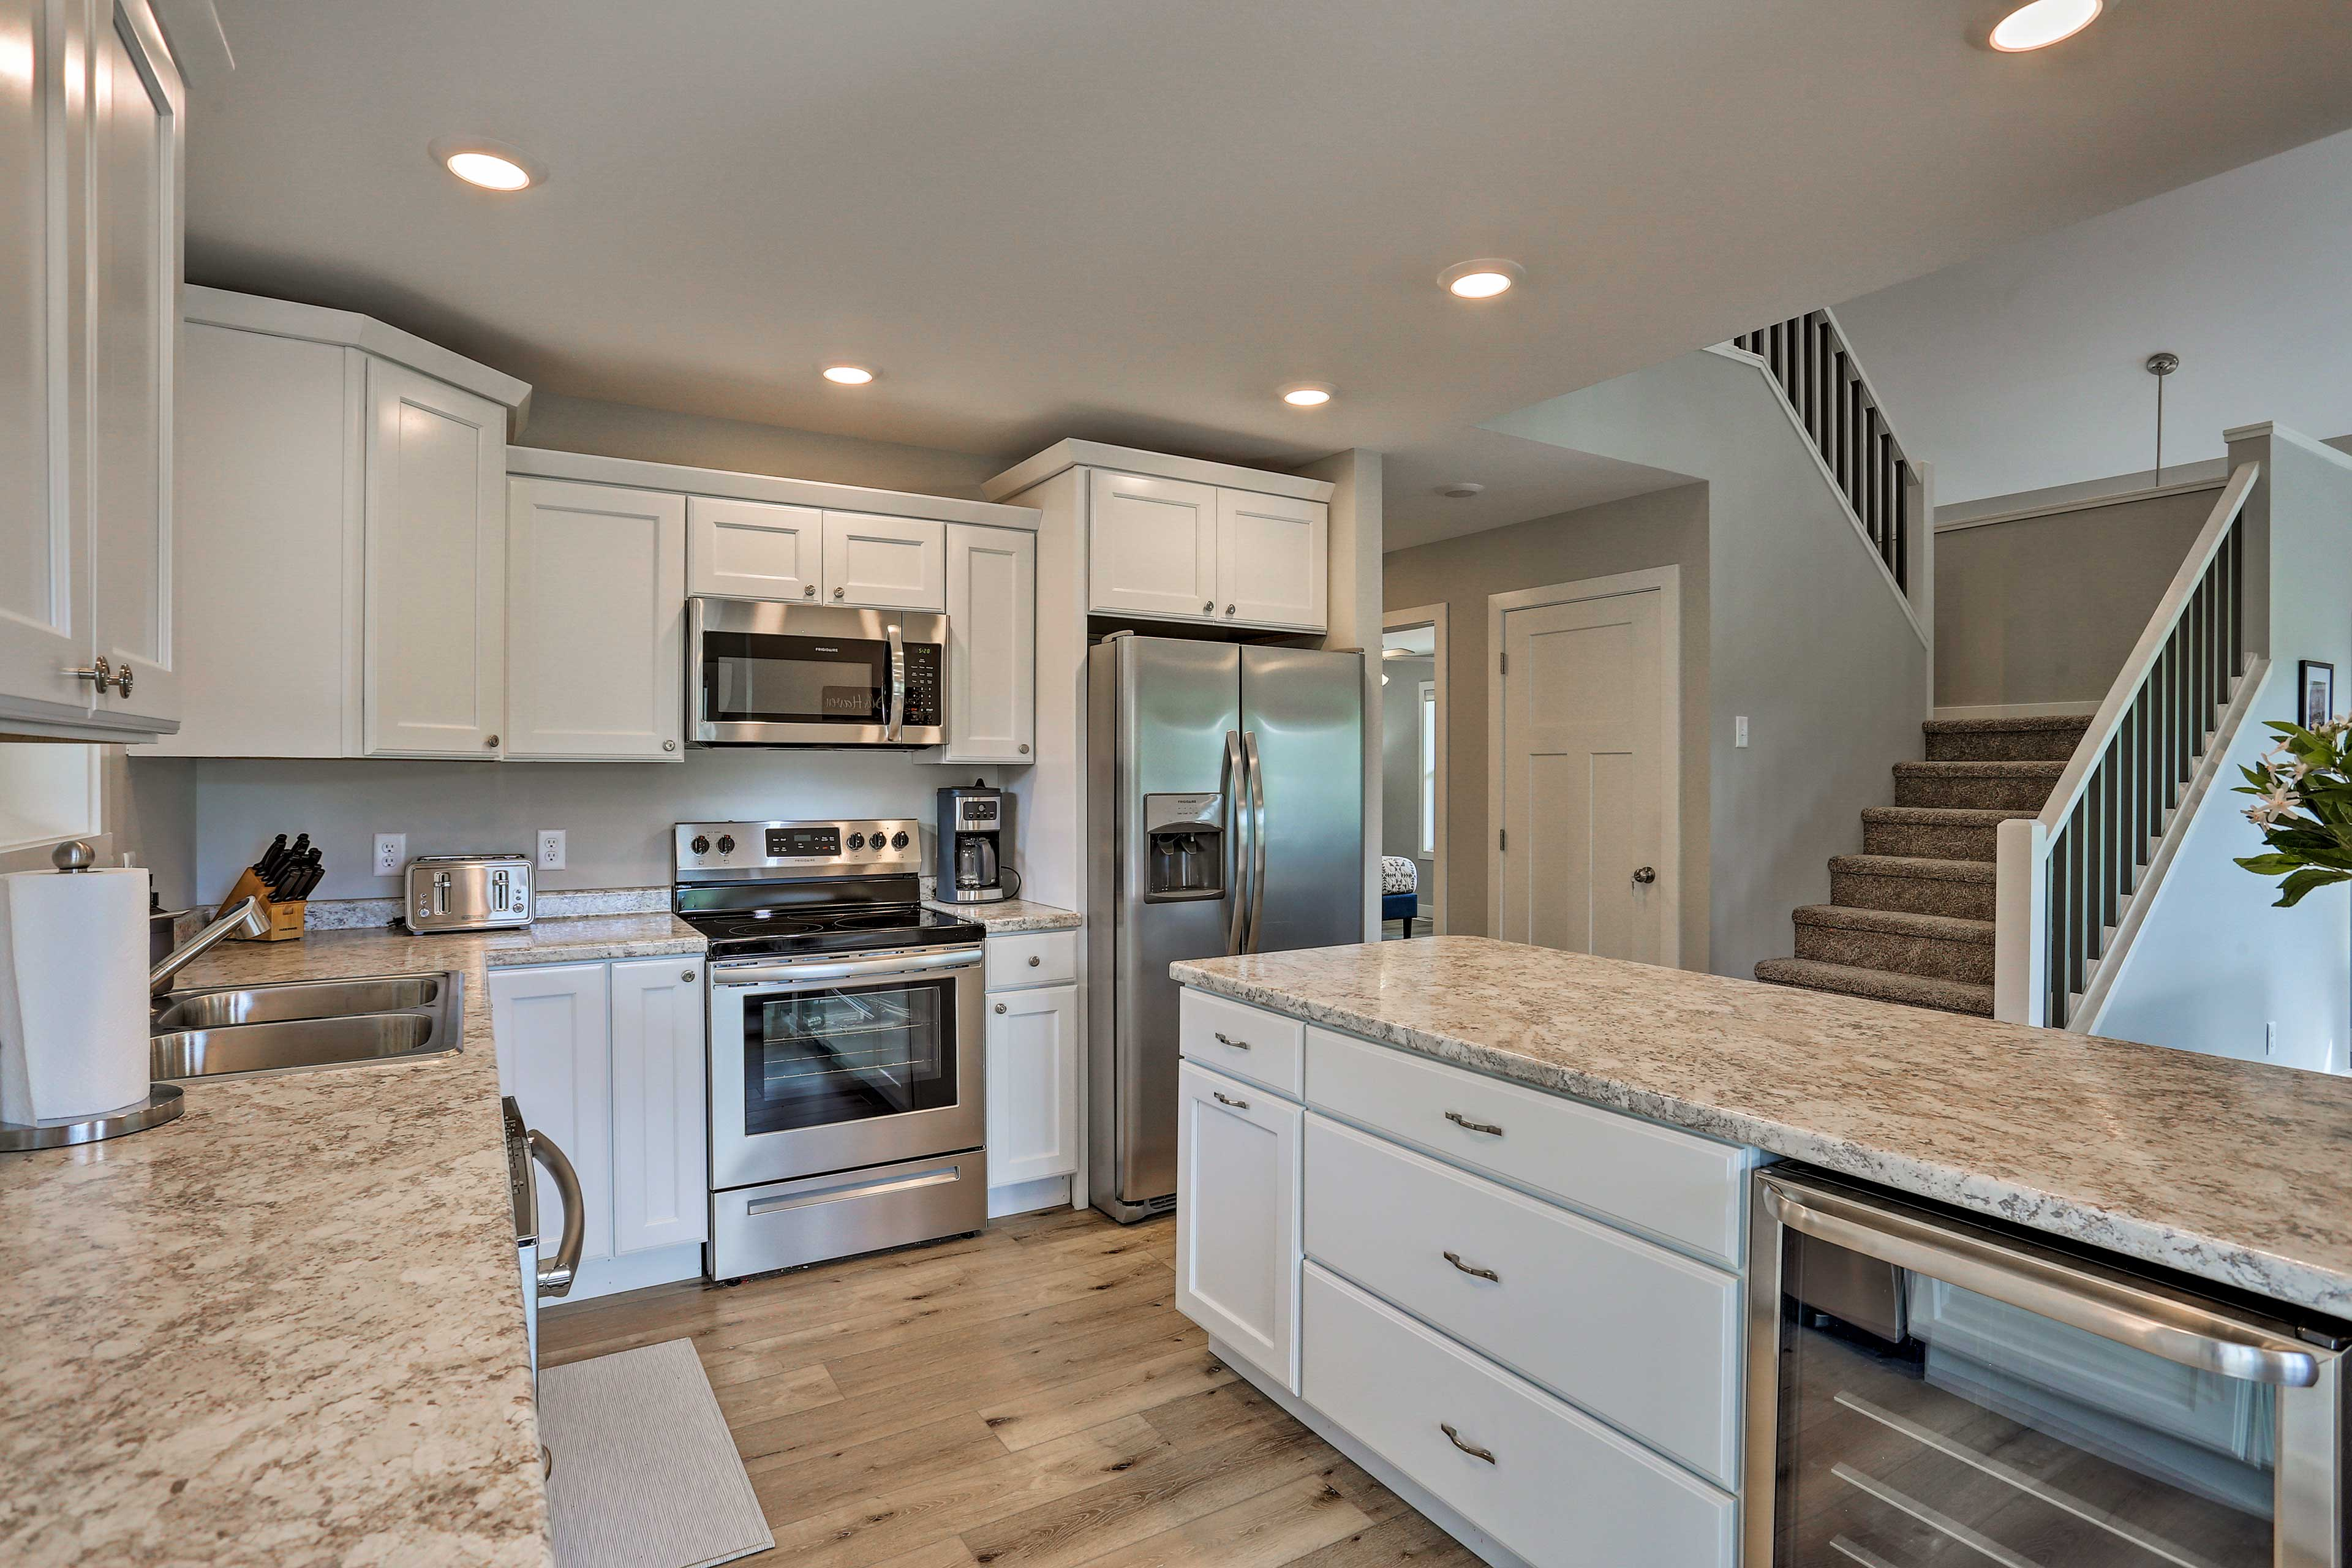 Stainless steel appliances make cooking a breeze.